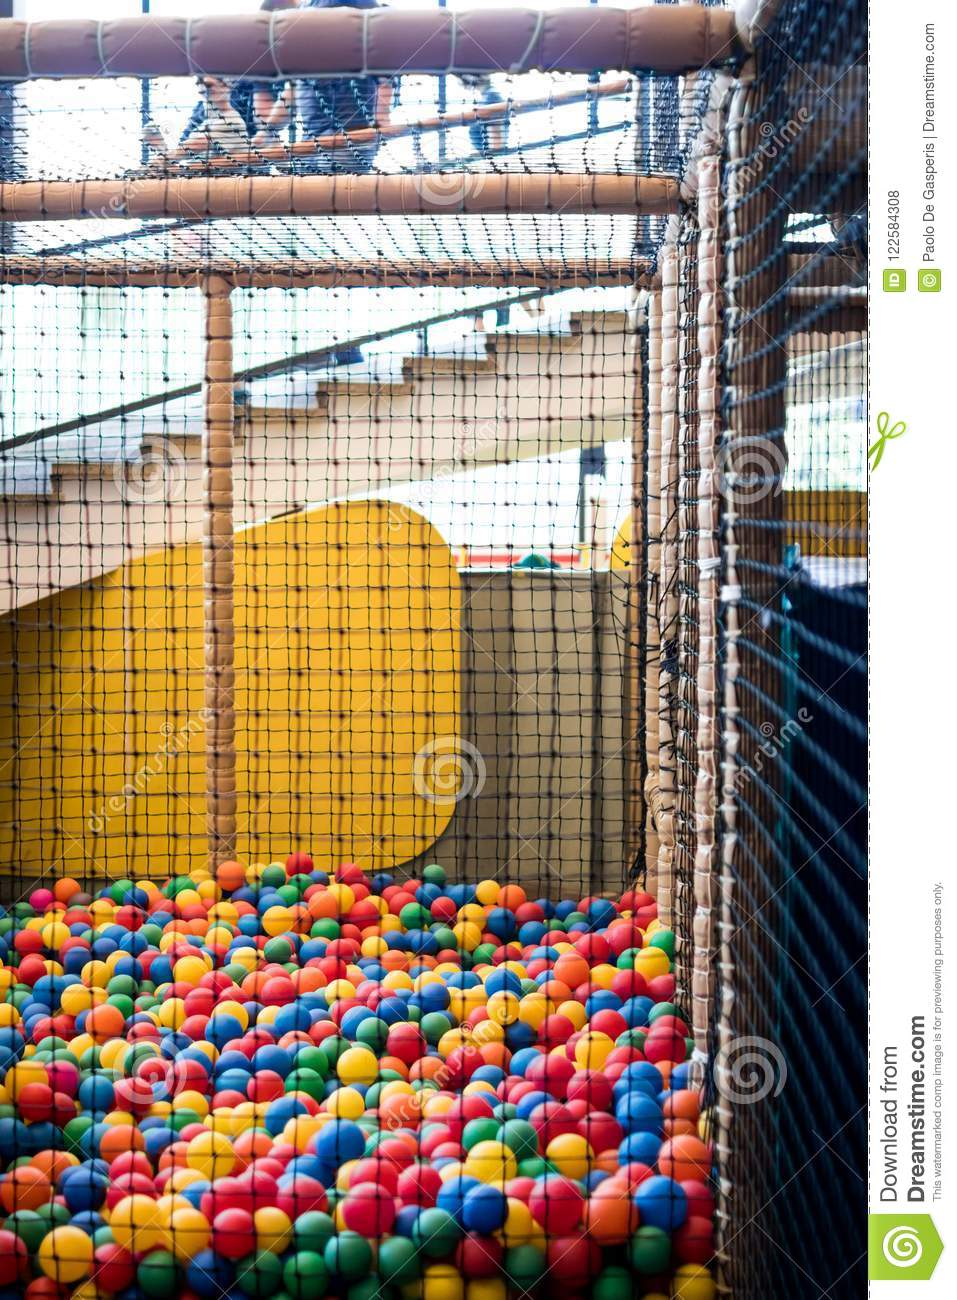 ball pool with a net for children. games for children in the amusement park, amusement area with a pool of colored soft balls, sw